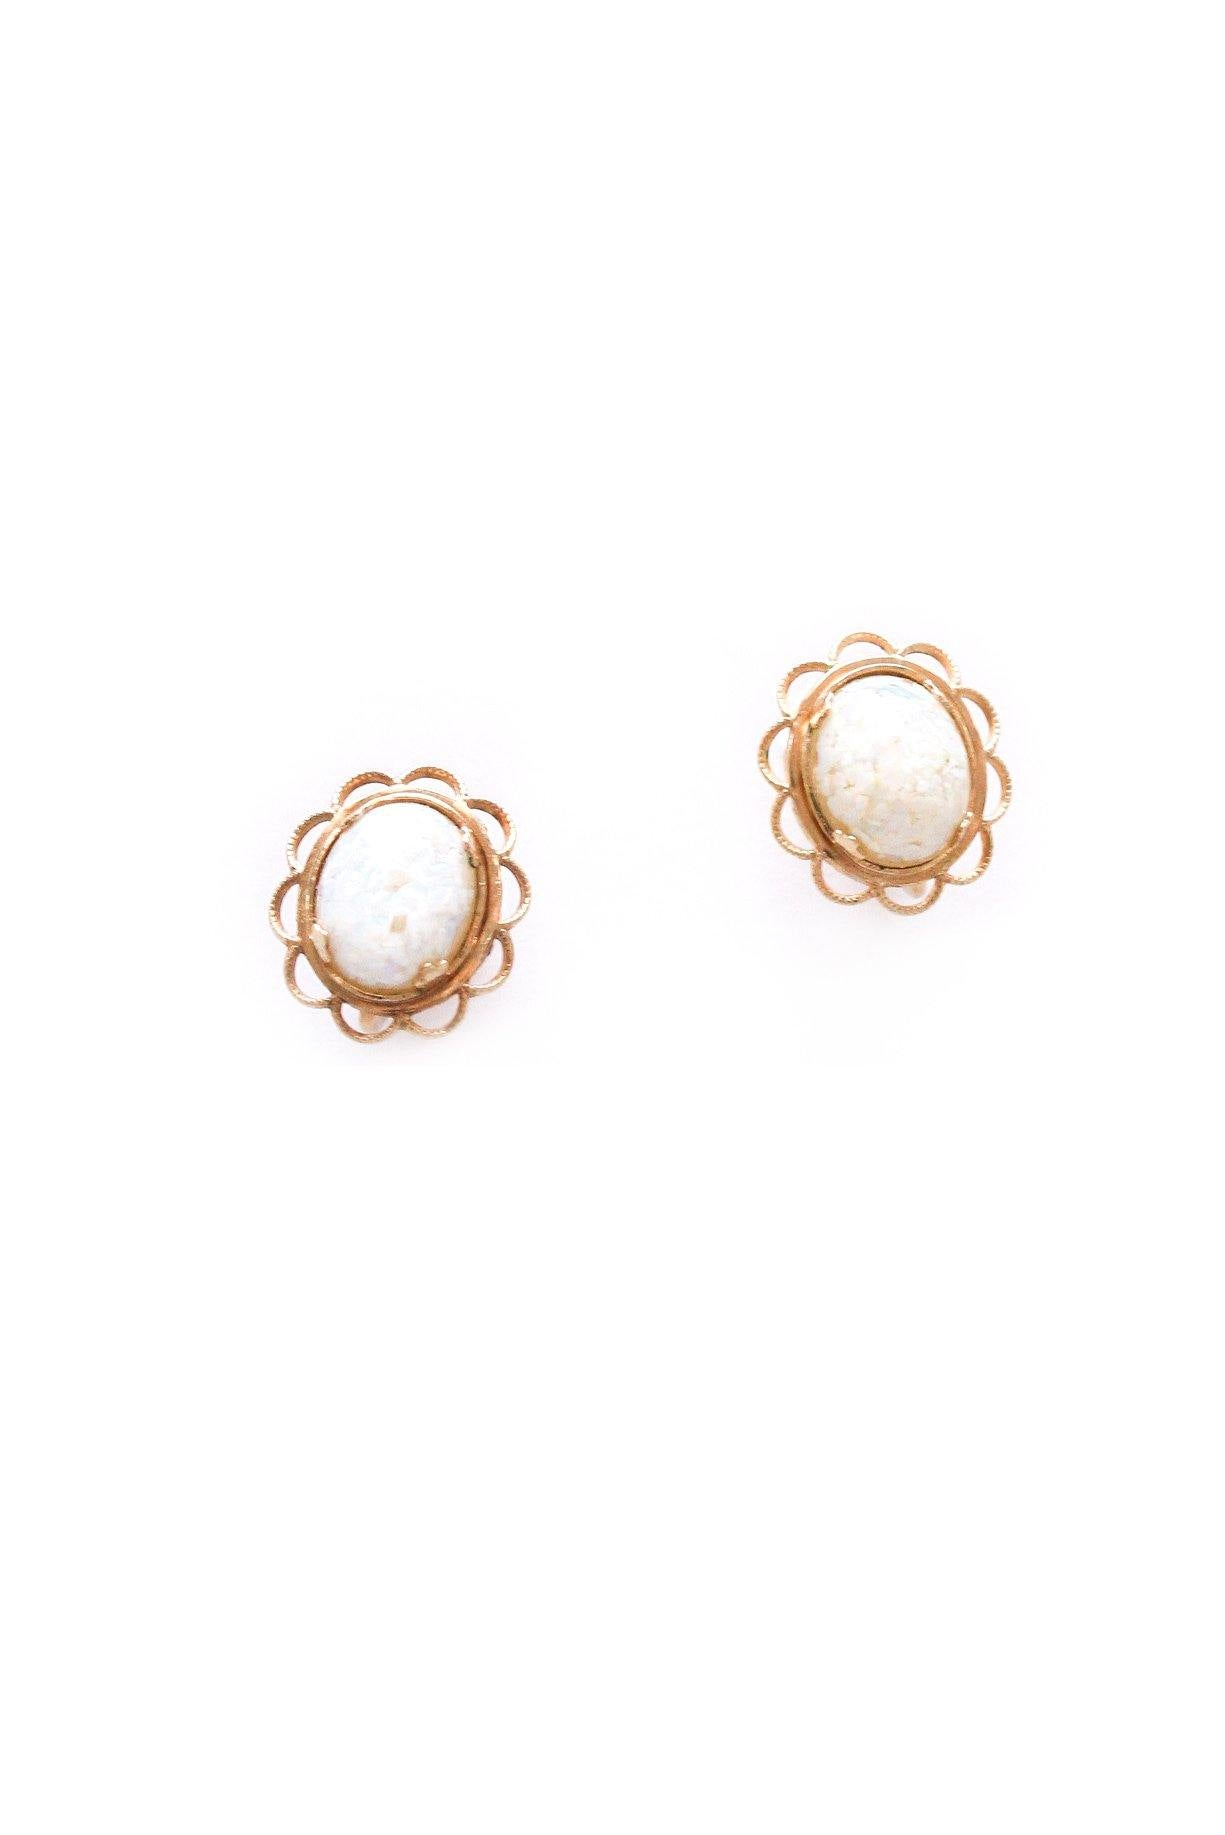 Dainty Opal Clip-on Earrings